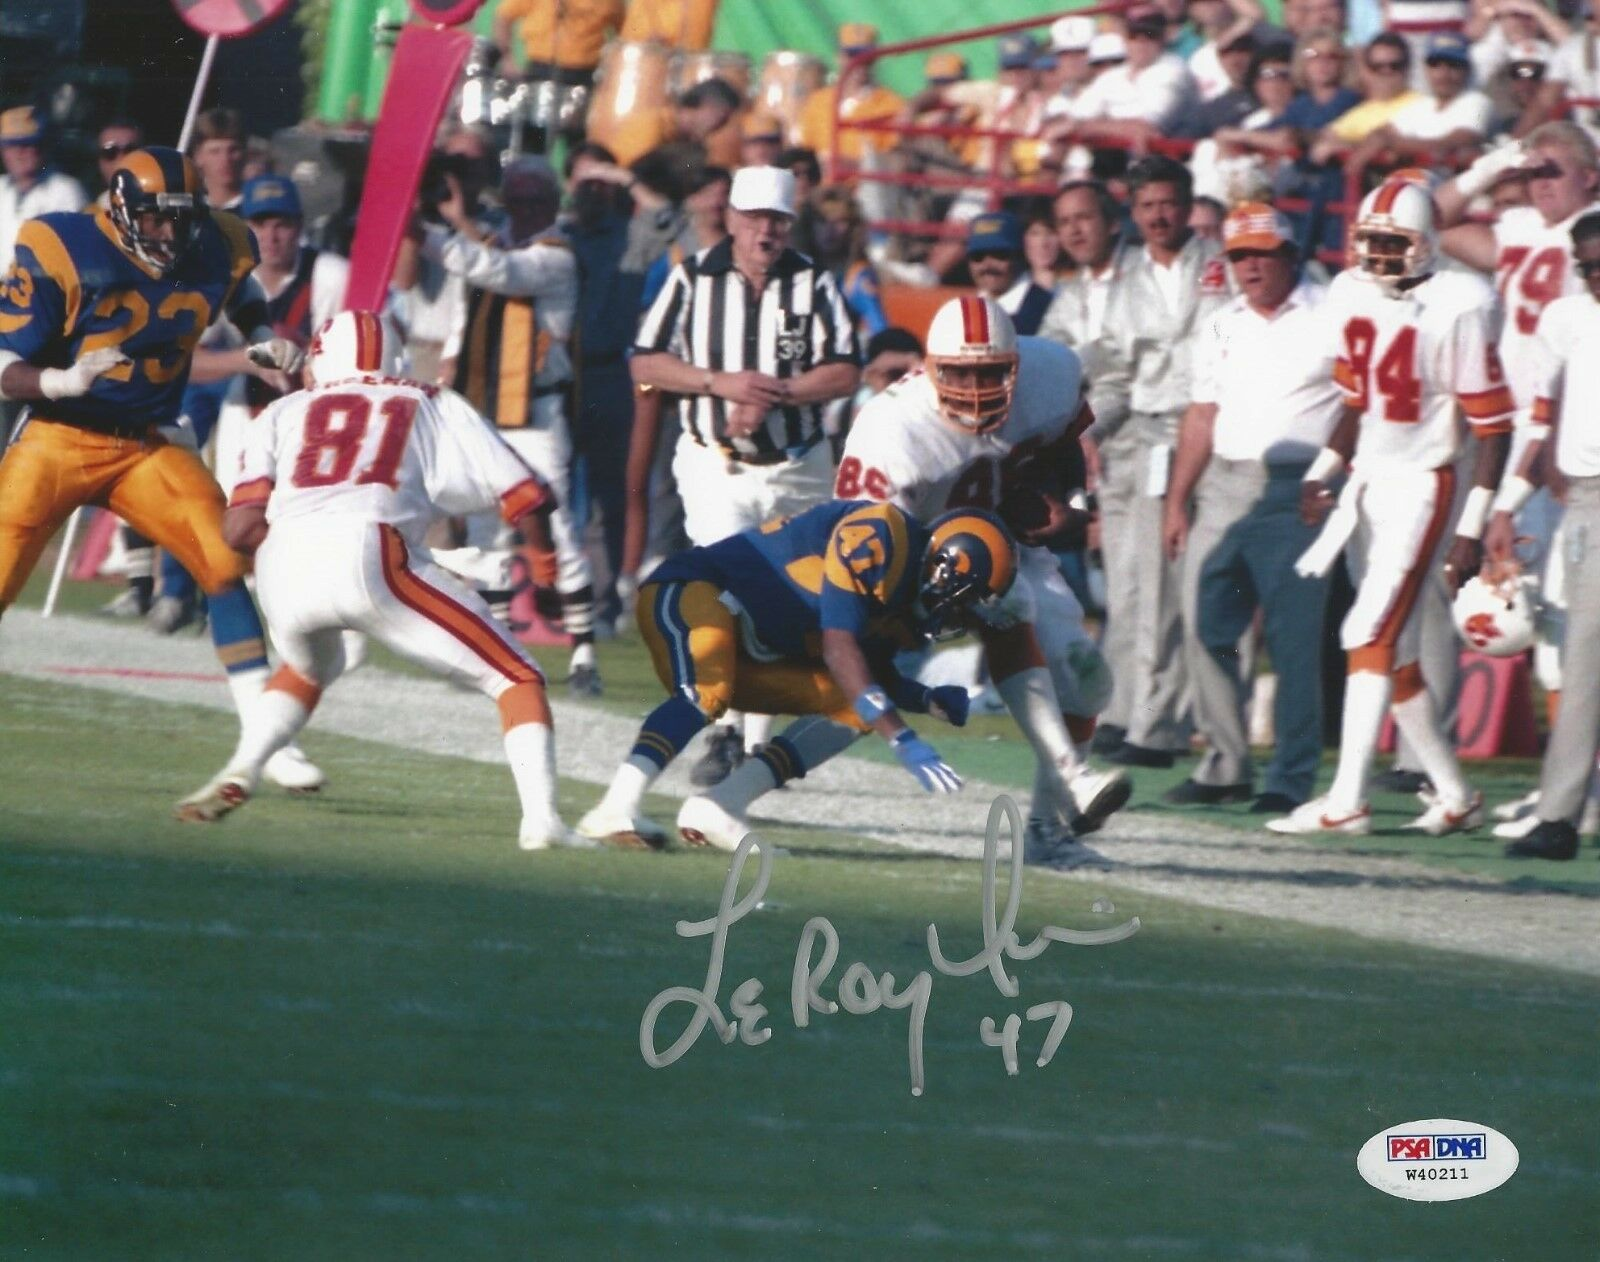 LeRoy Irvin Los Angeles Rams Signed 8x10 Photo - PSA/DNA # W40211